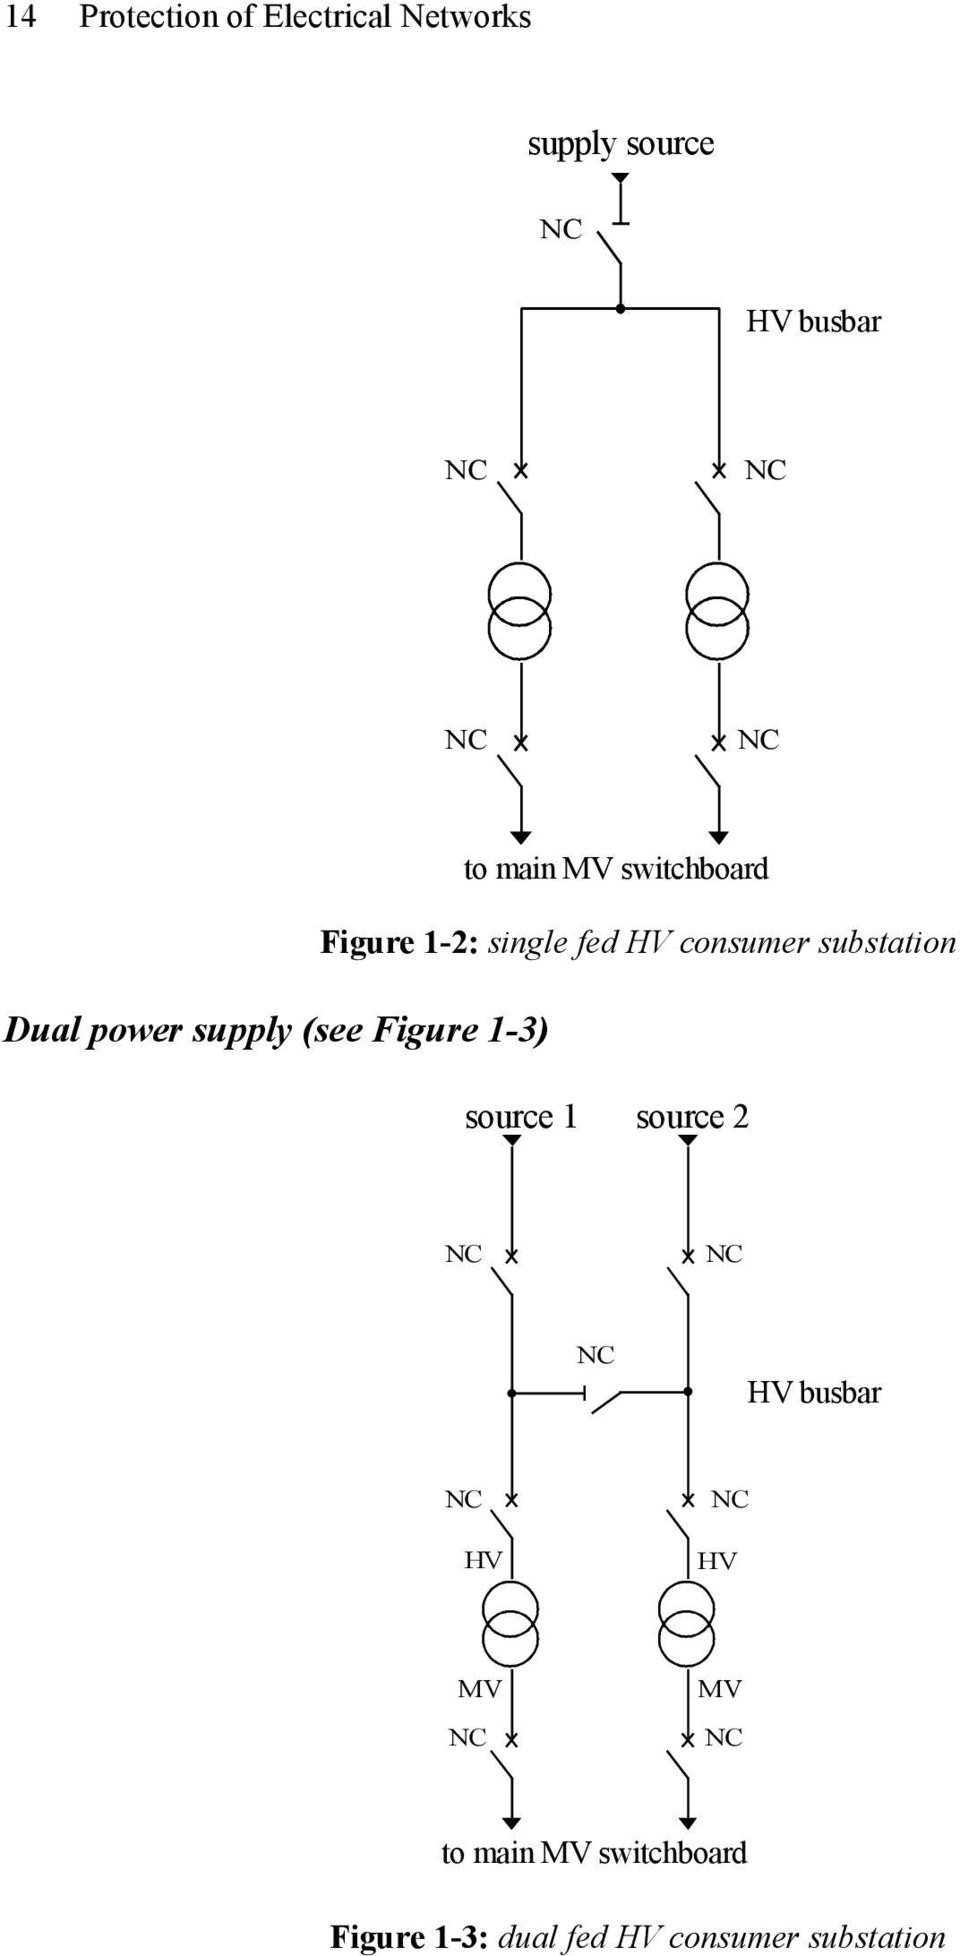 Dual power supply (see Figure 1-3) source 1 source 2 HV H busbar